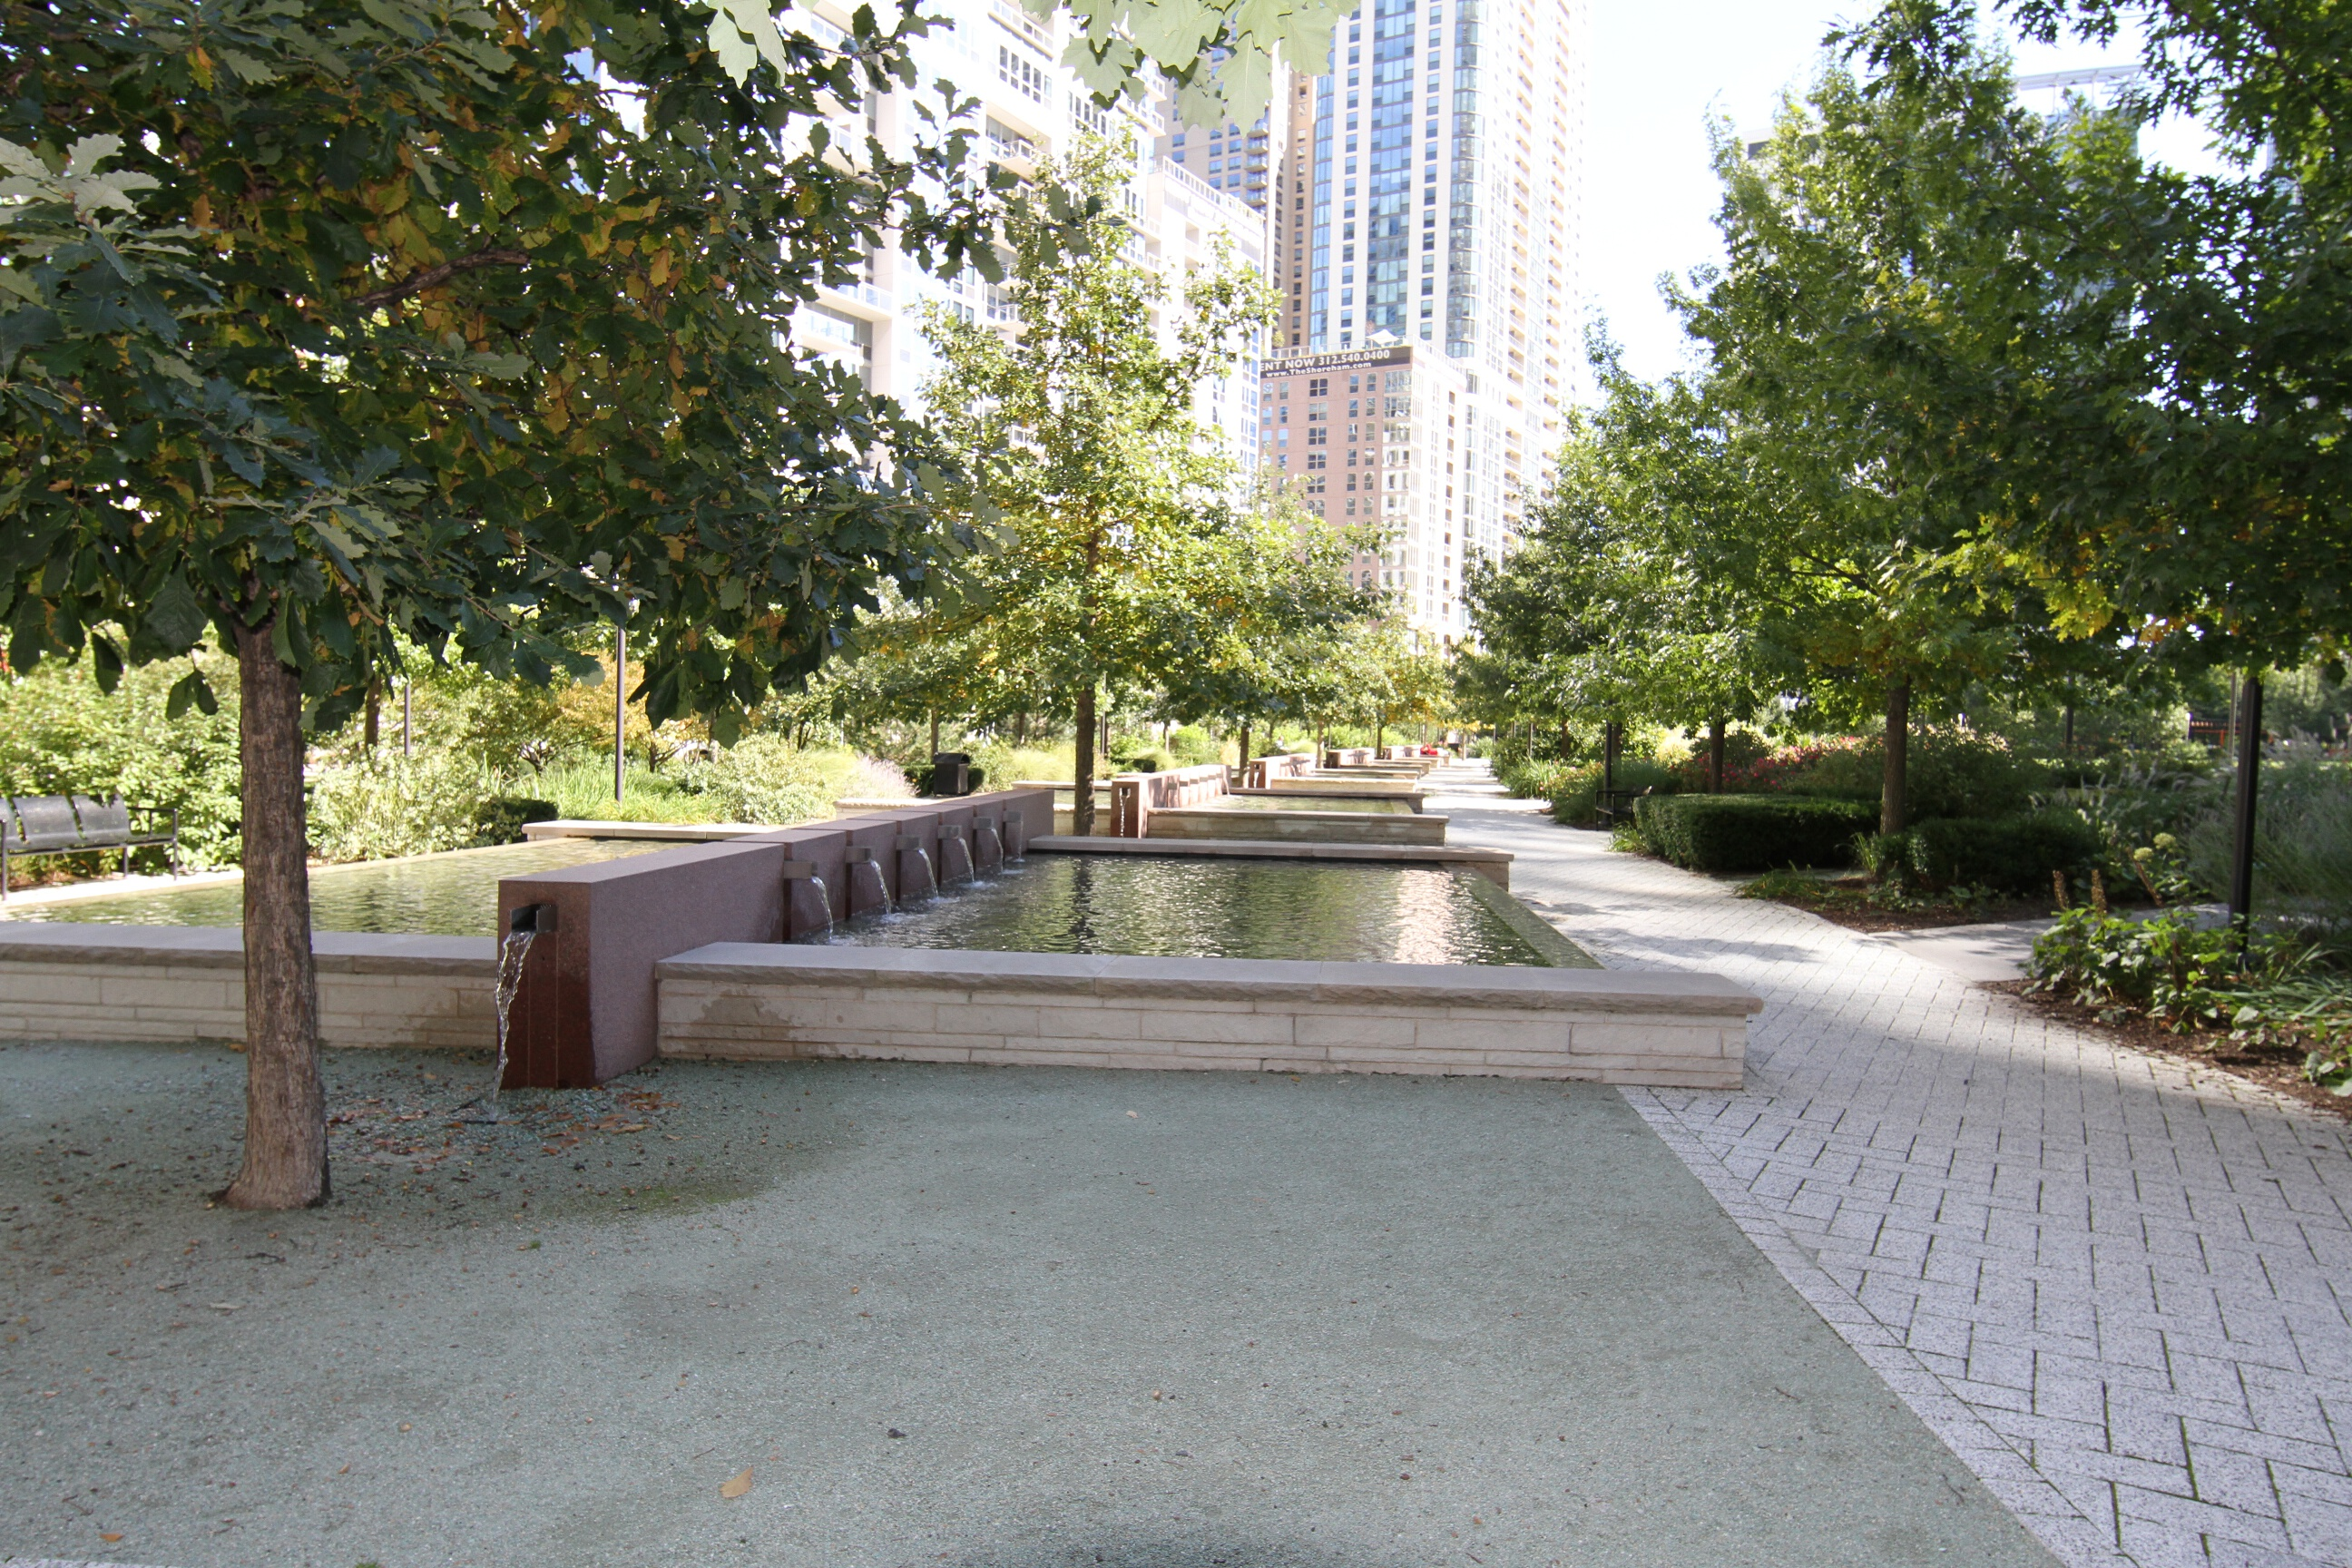 Fountains in LSE Park